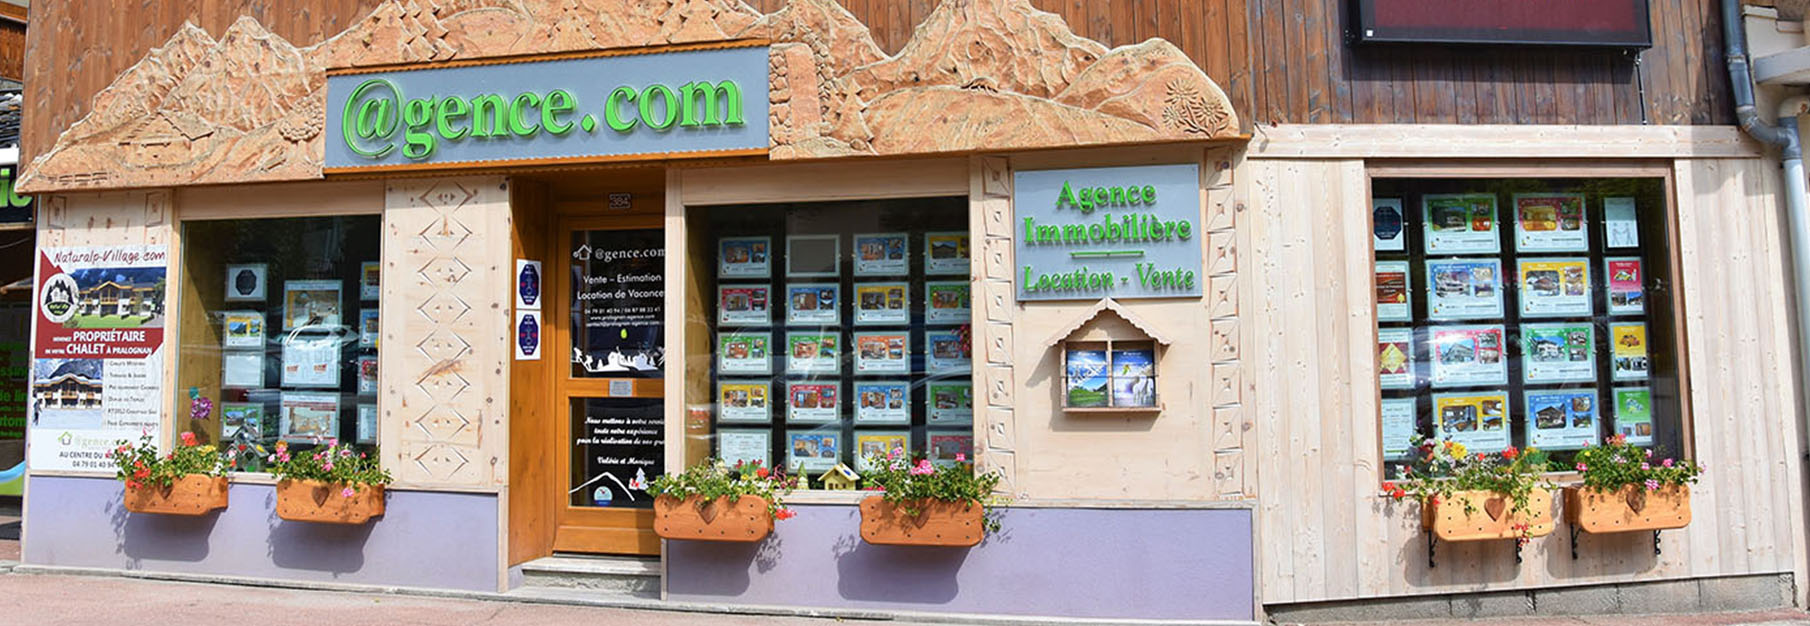 Agence immobiliere Pralognan